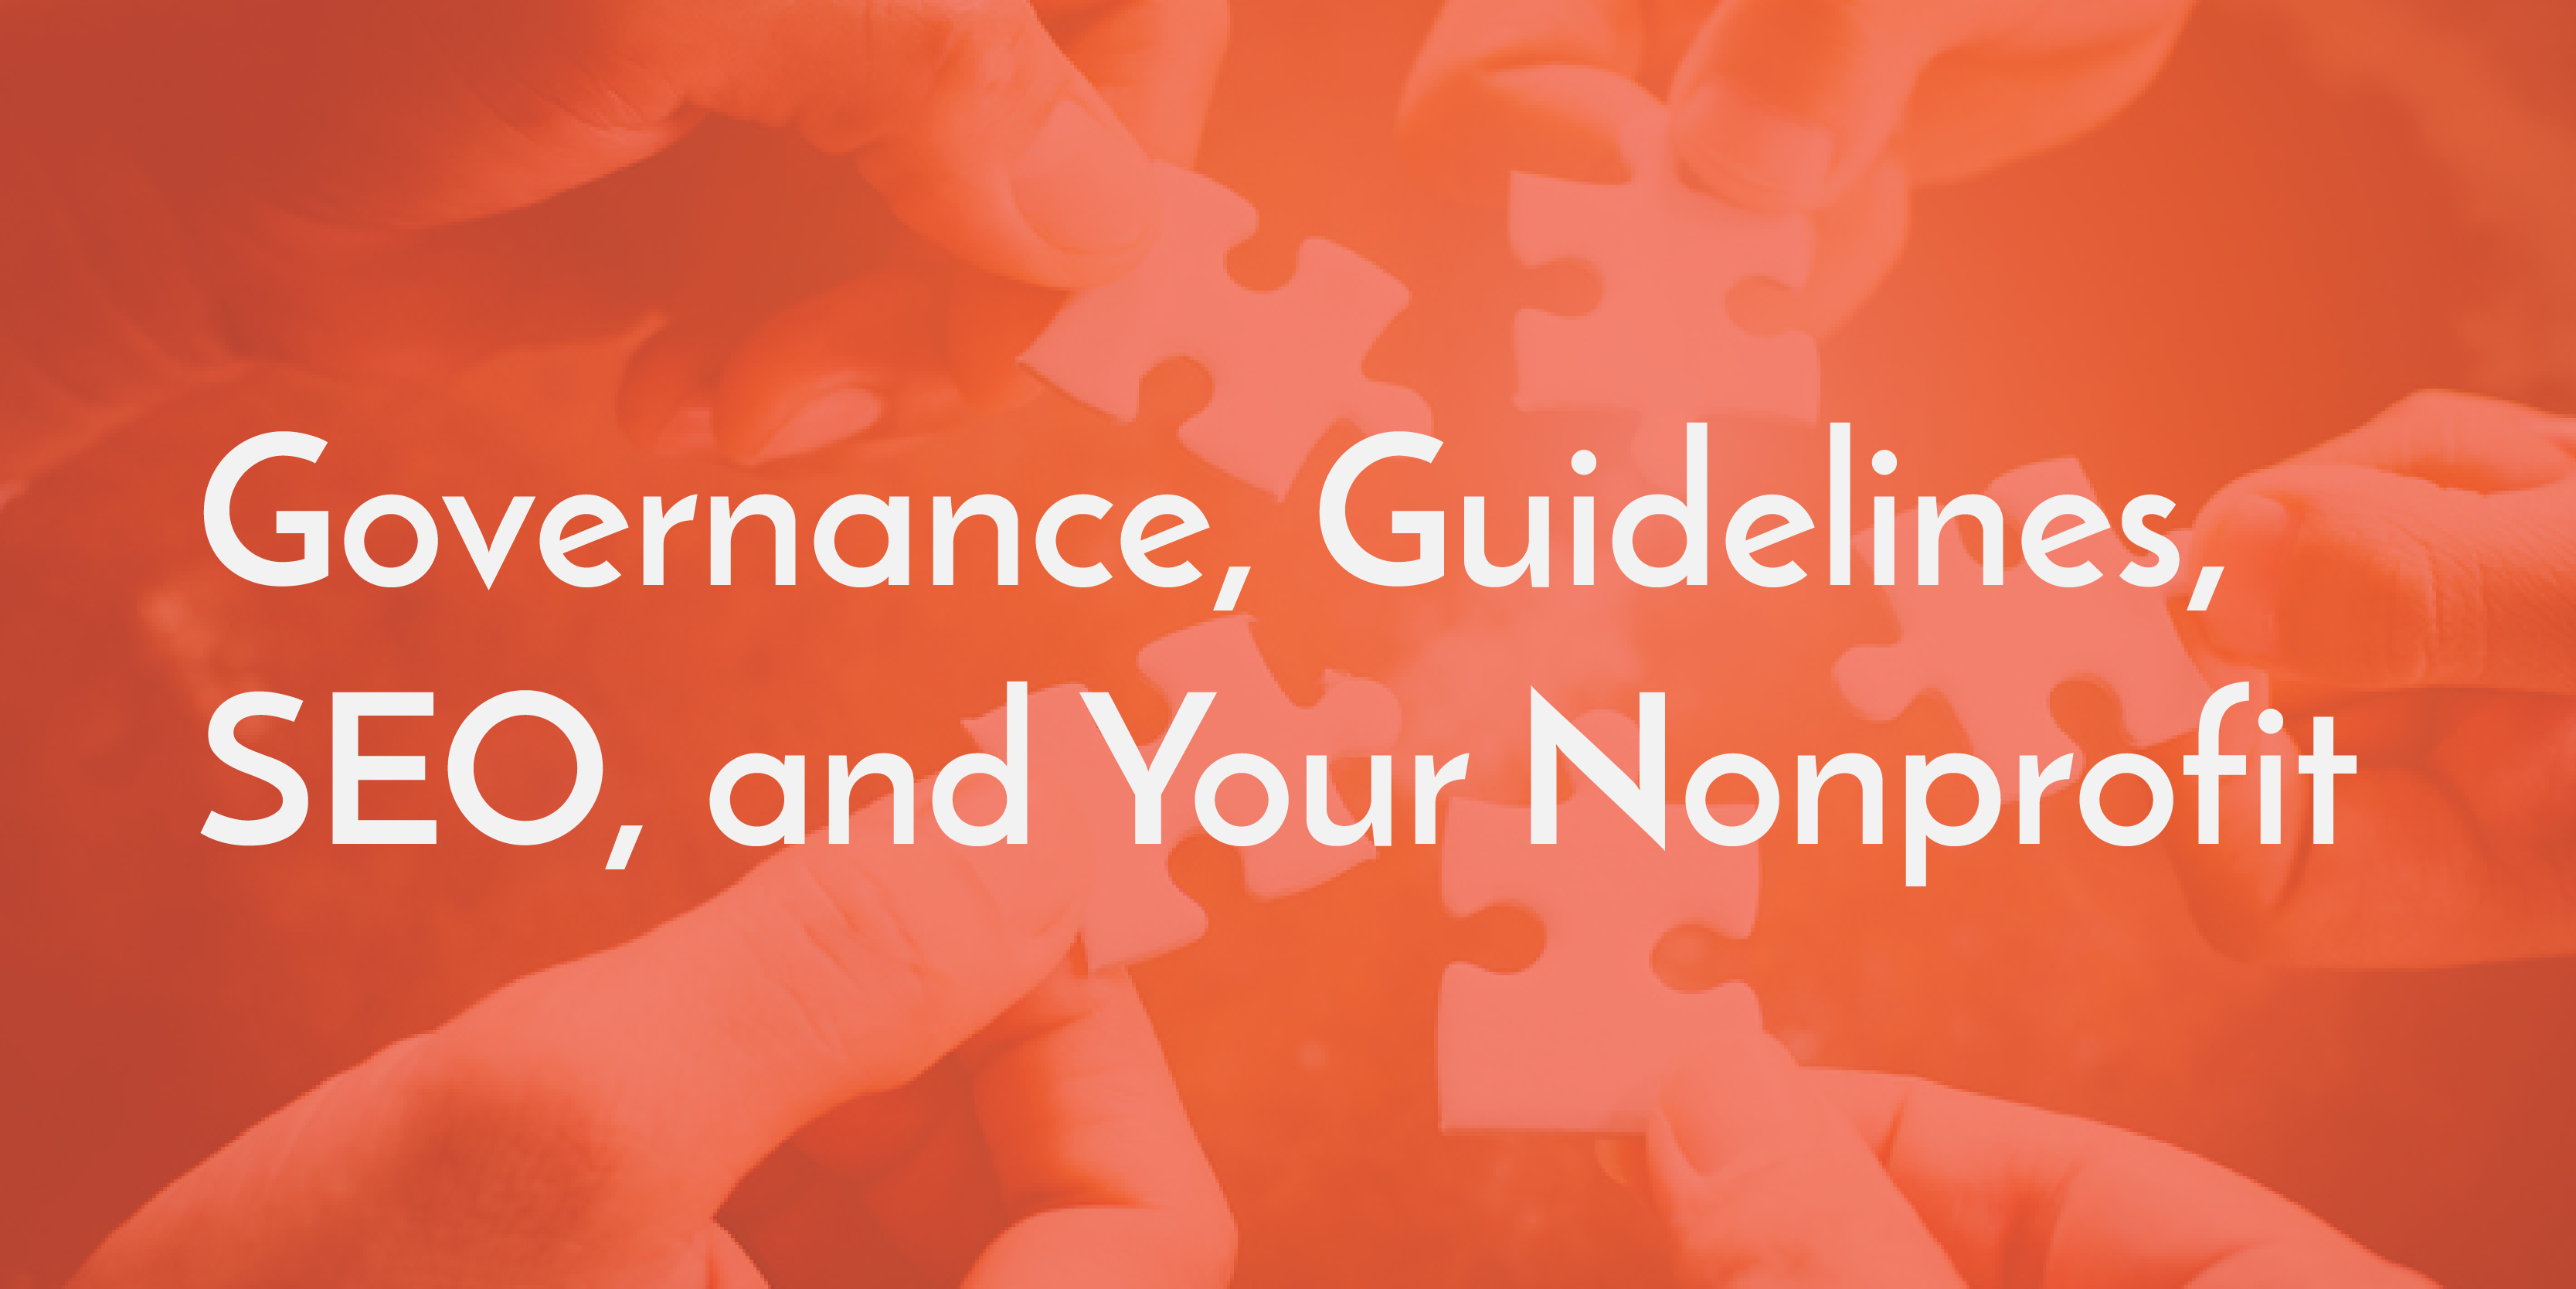 Governance Guidelines for Nonprofits